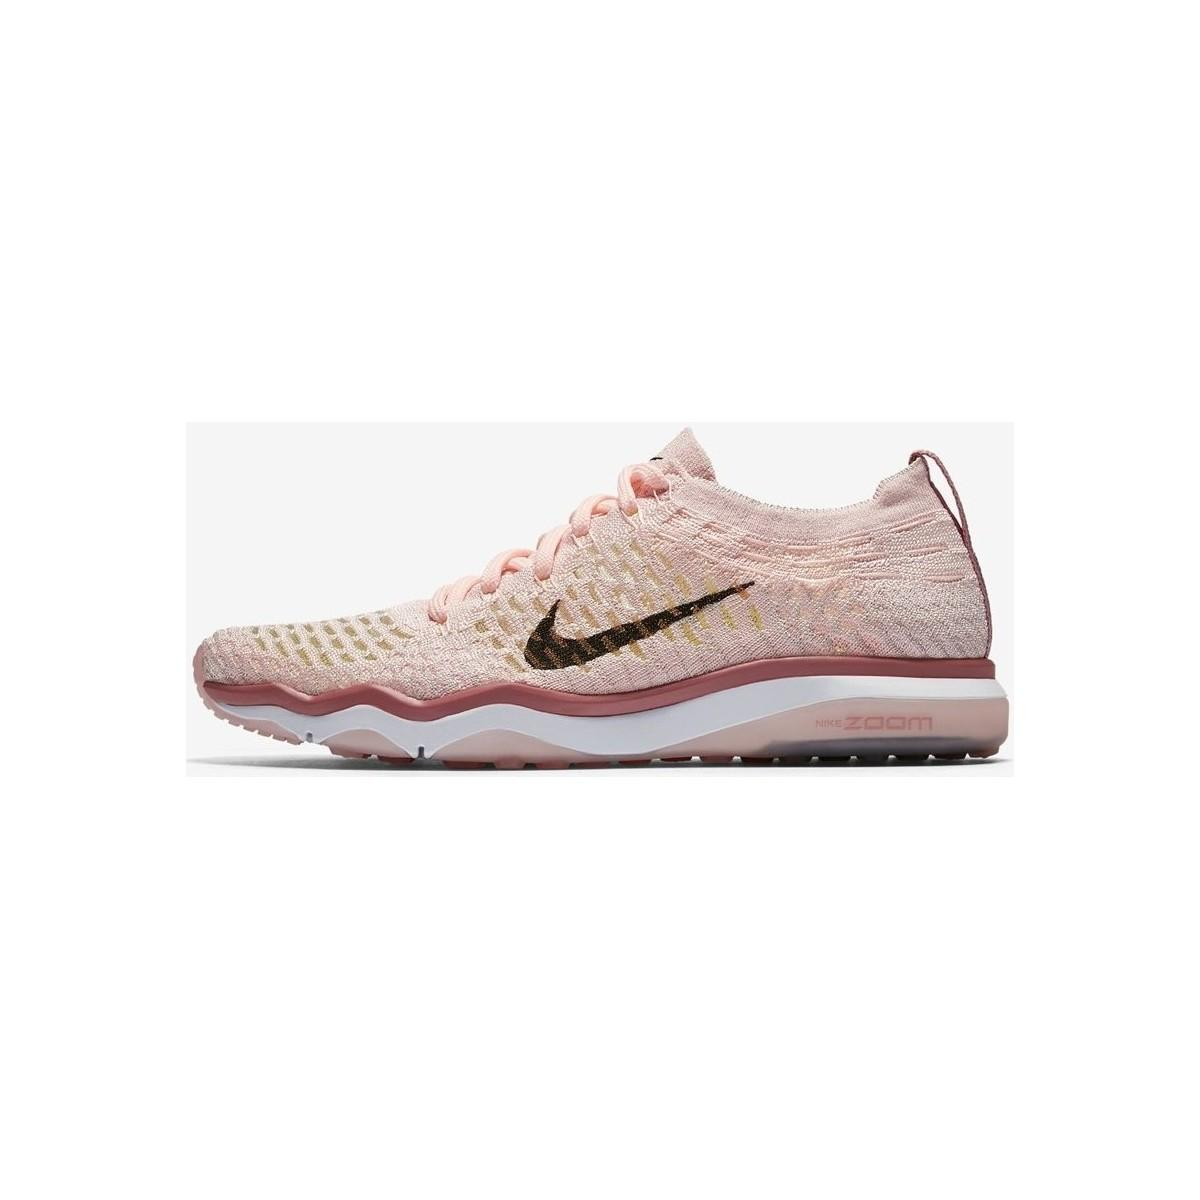 99bab4a31db Nike Zoom Fearless Flyknit Bionic 904643 600 Women s Shoes (trainers ...